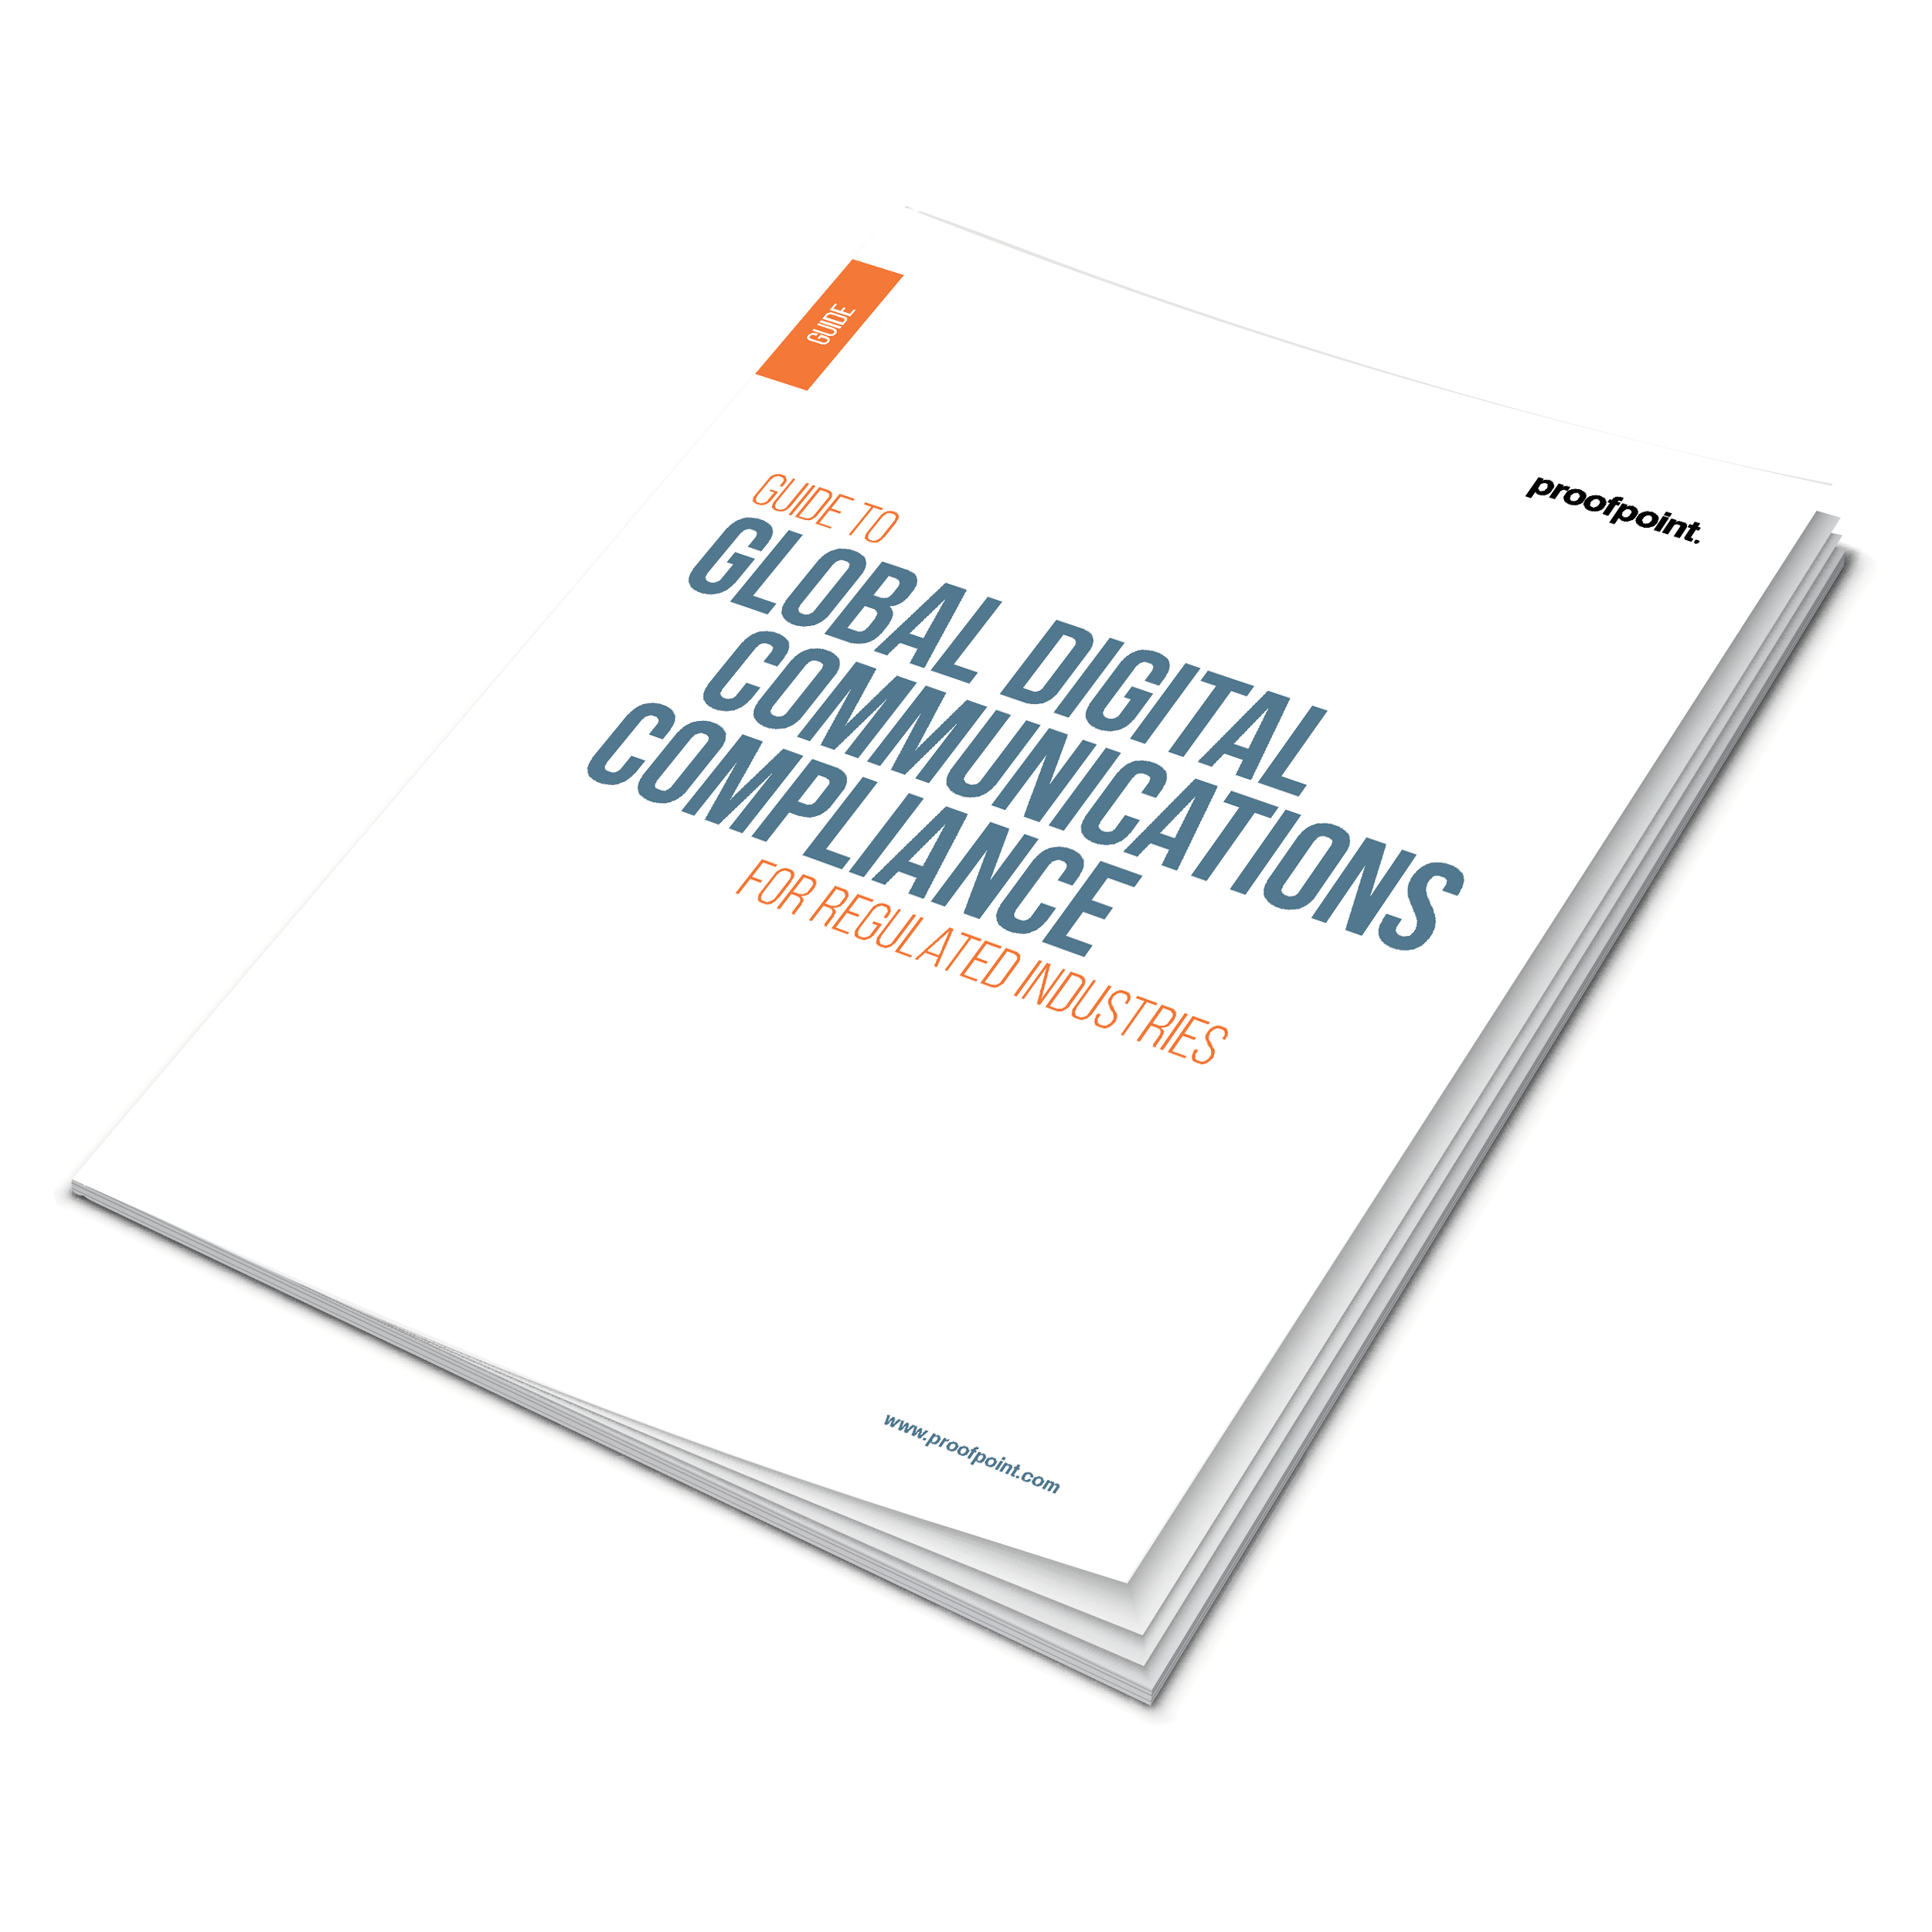 Guide to Global Digital Communications Compliance for Regulated Industries